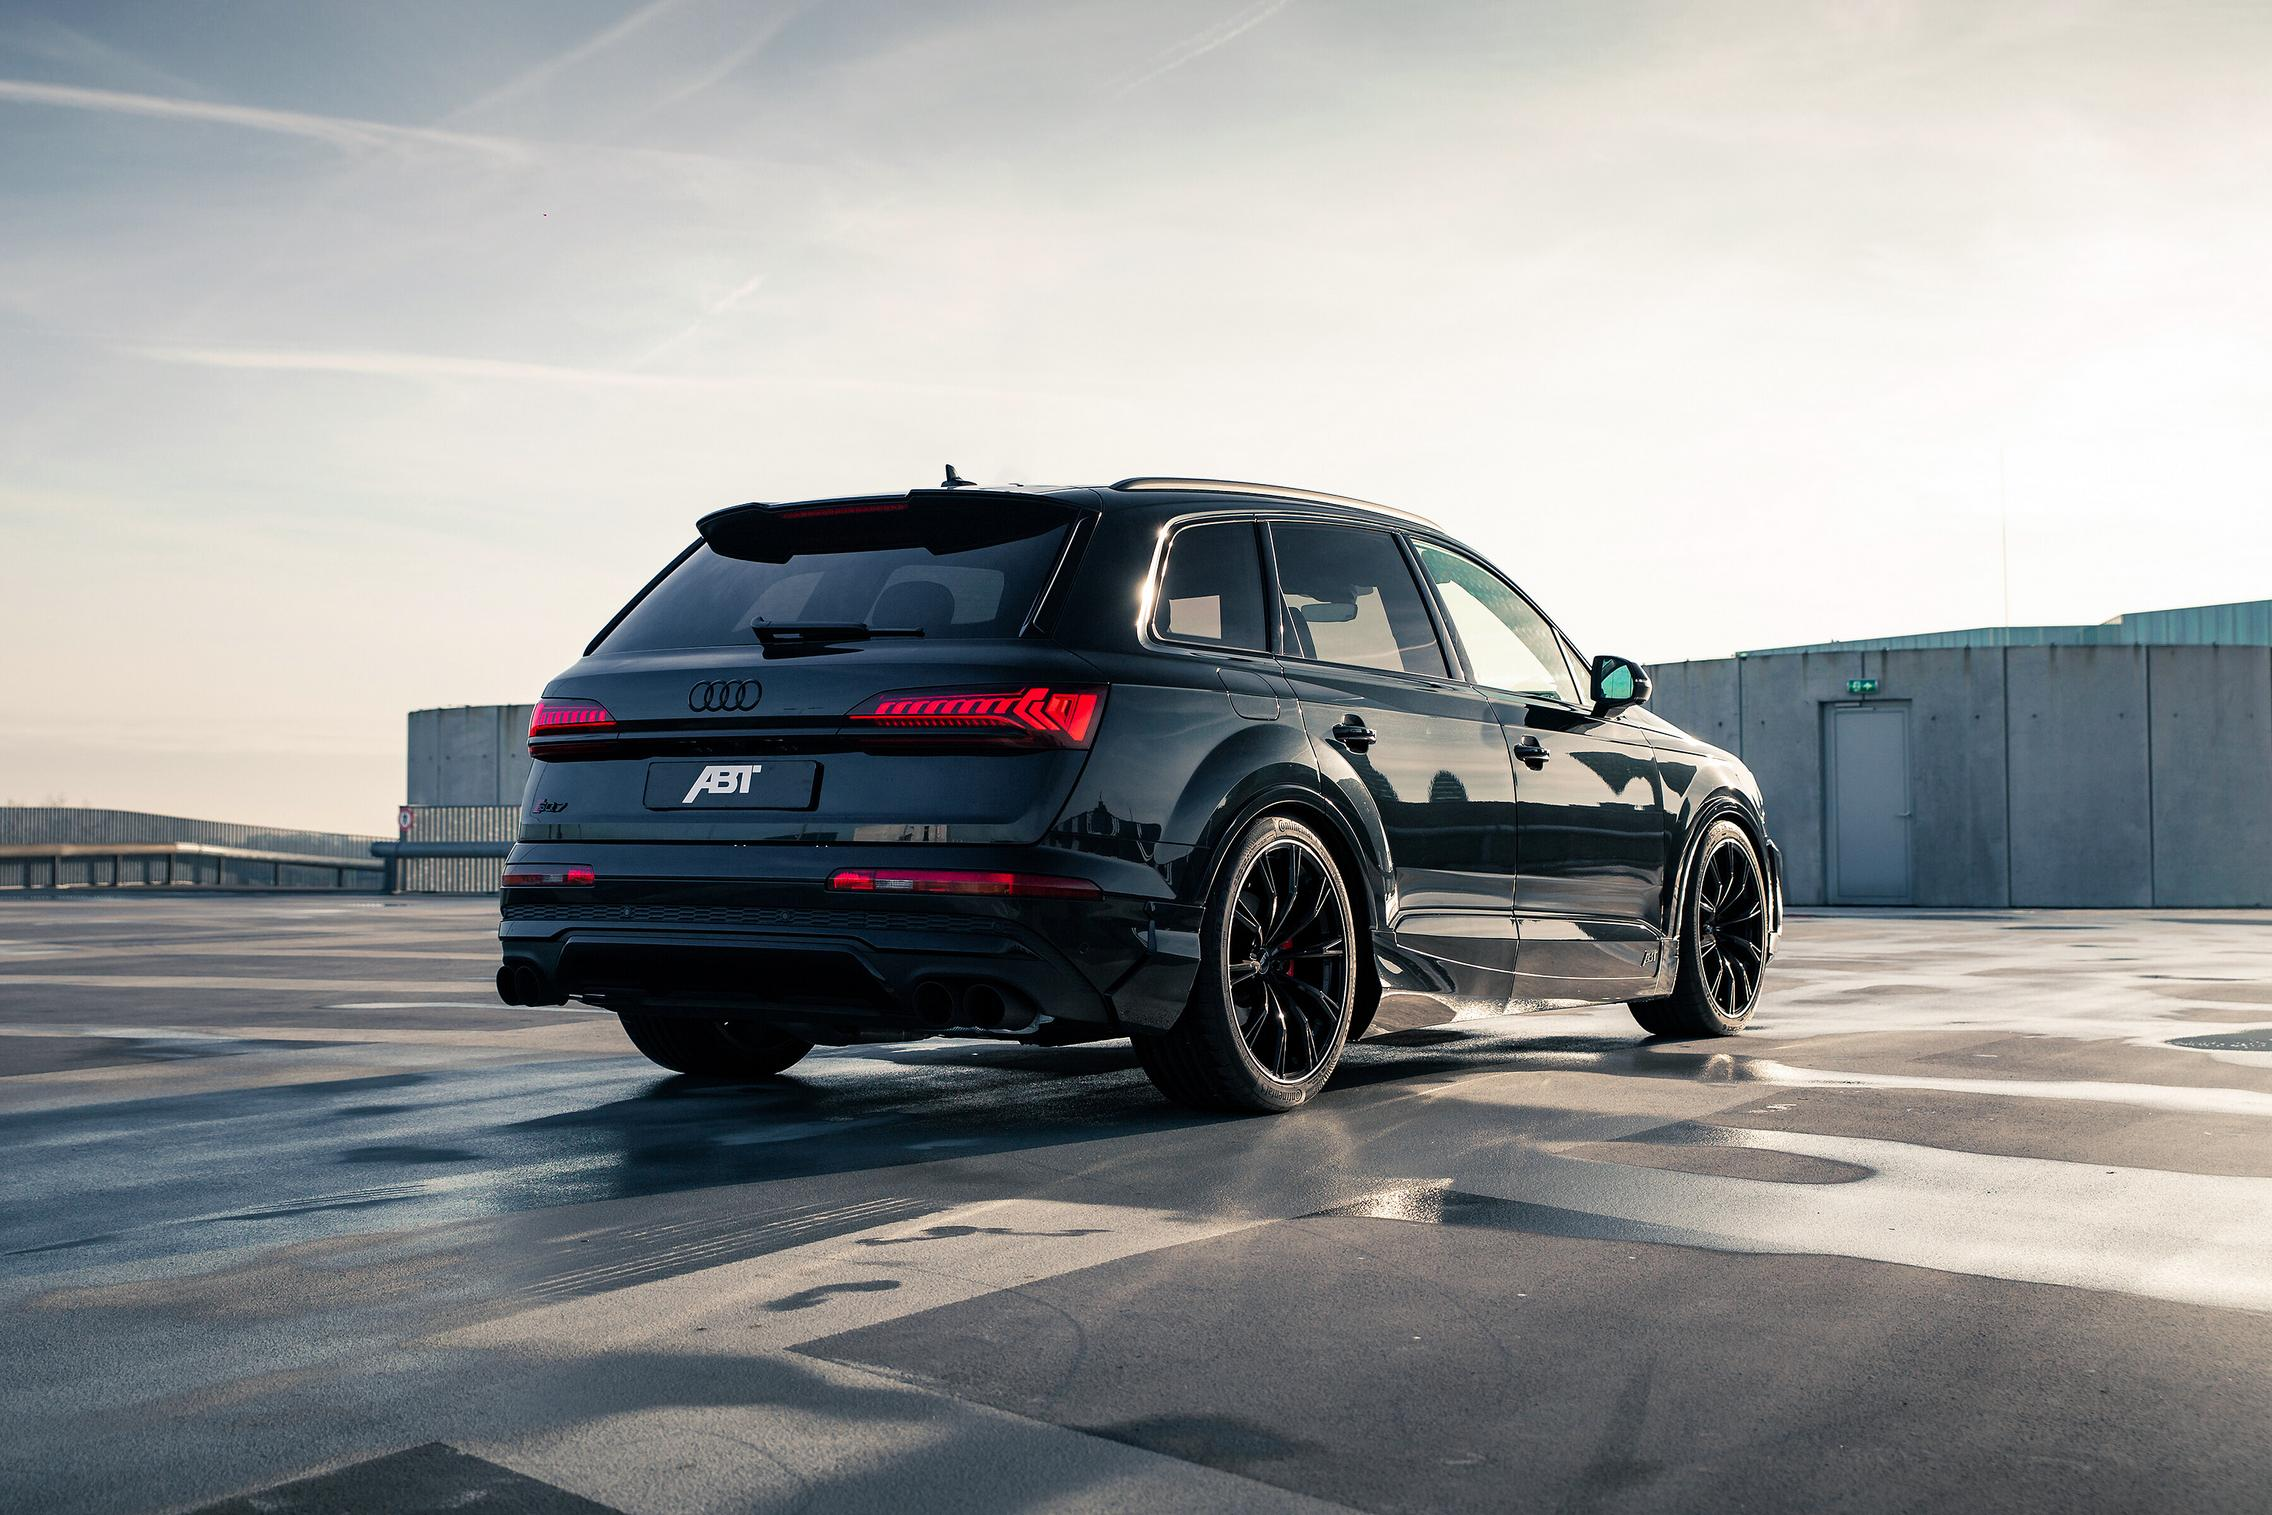 ABT Audi SQ7 rear